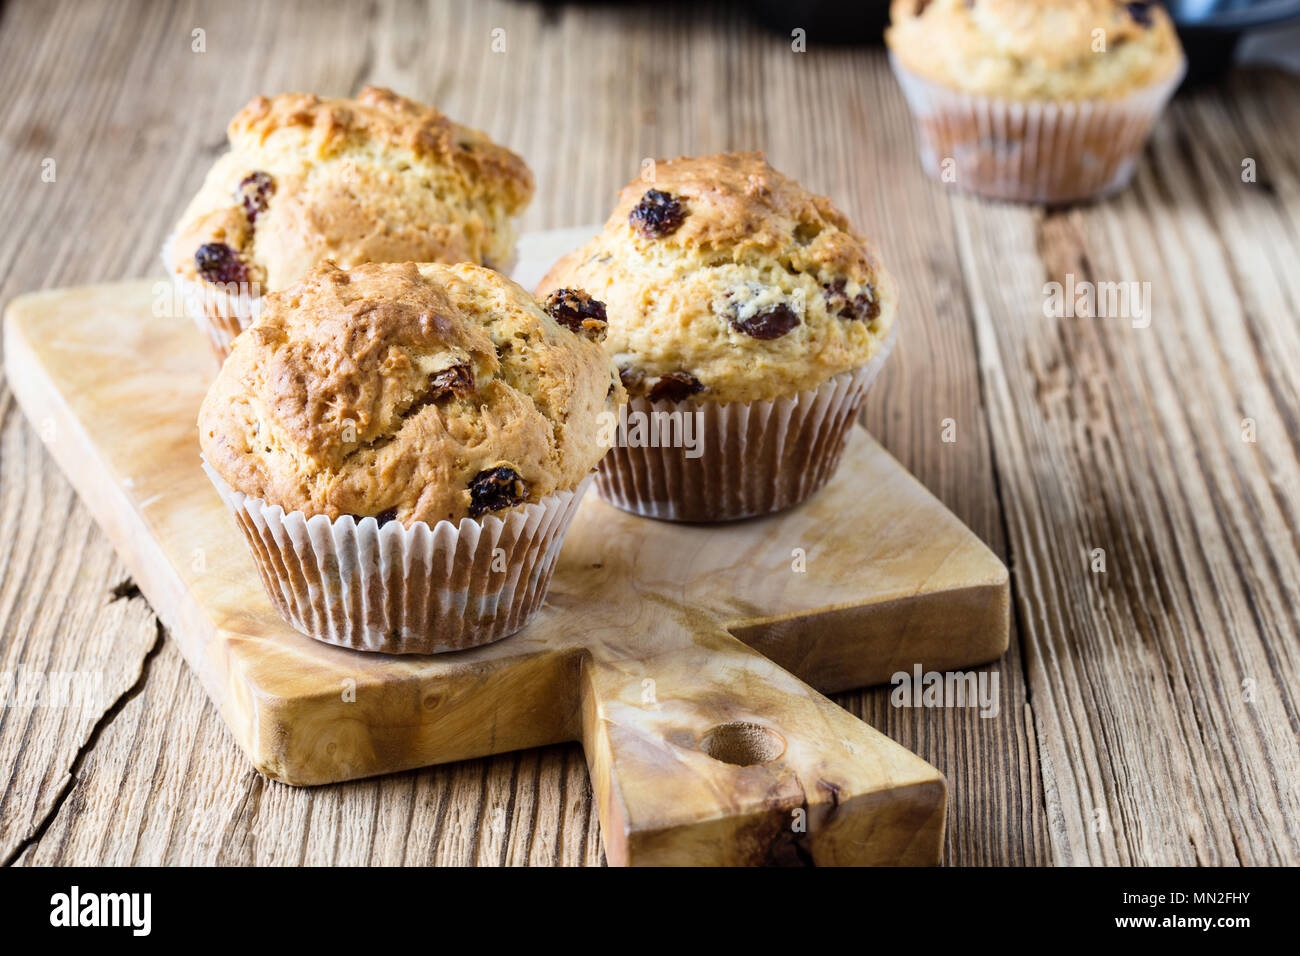 Breakfast cornmeal muffins with raisins, traditional american home baking - Stock Image